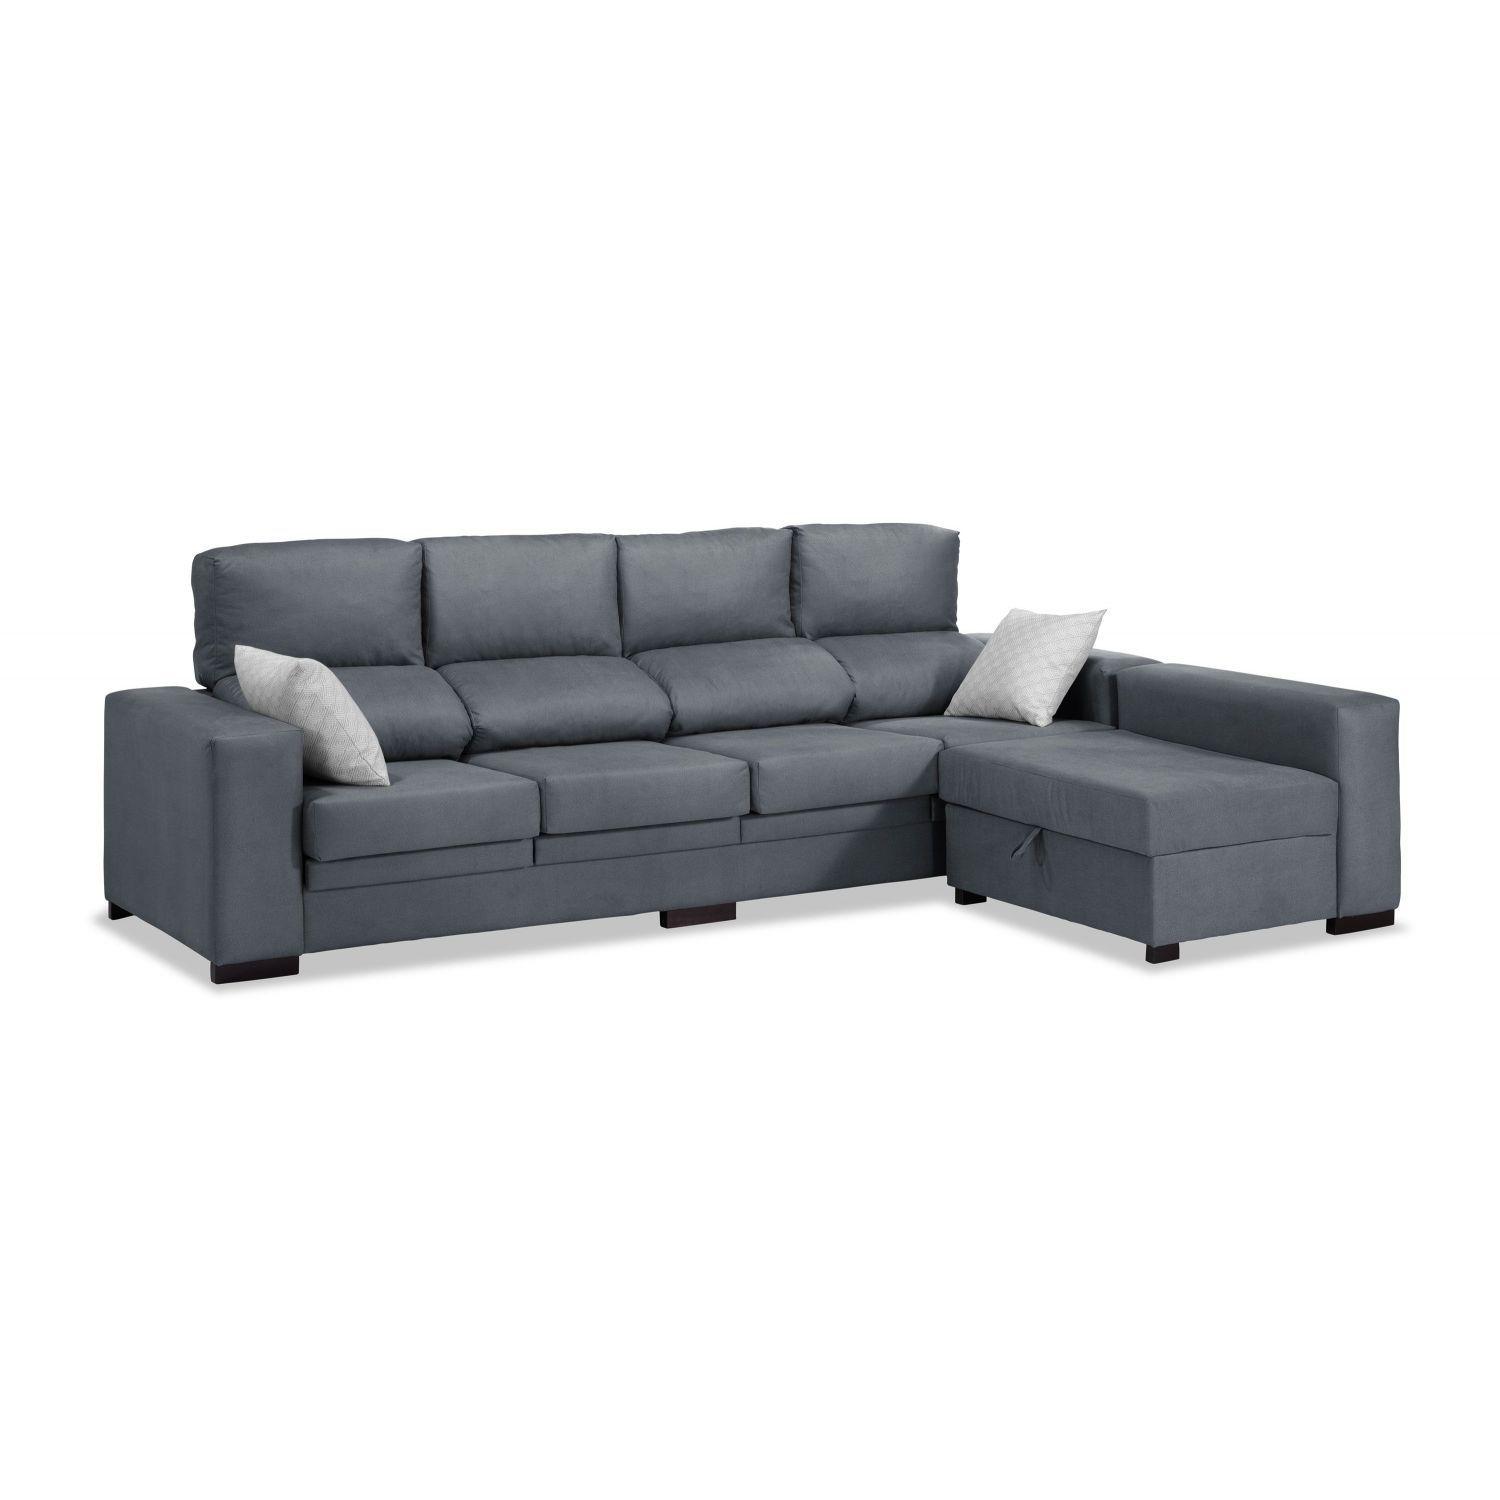 Sof chaise longue 4 plazas marengo 270 cm for Sofa 4 plazas mas chaise longue